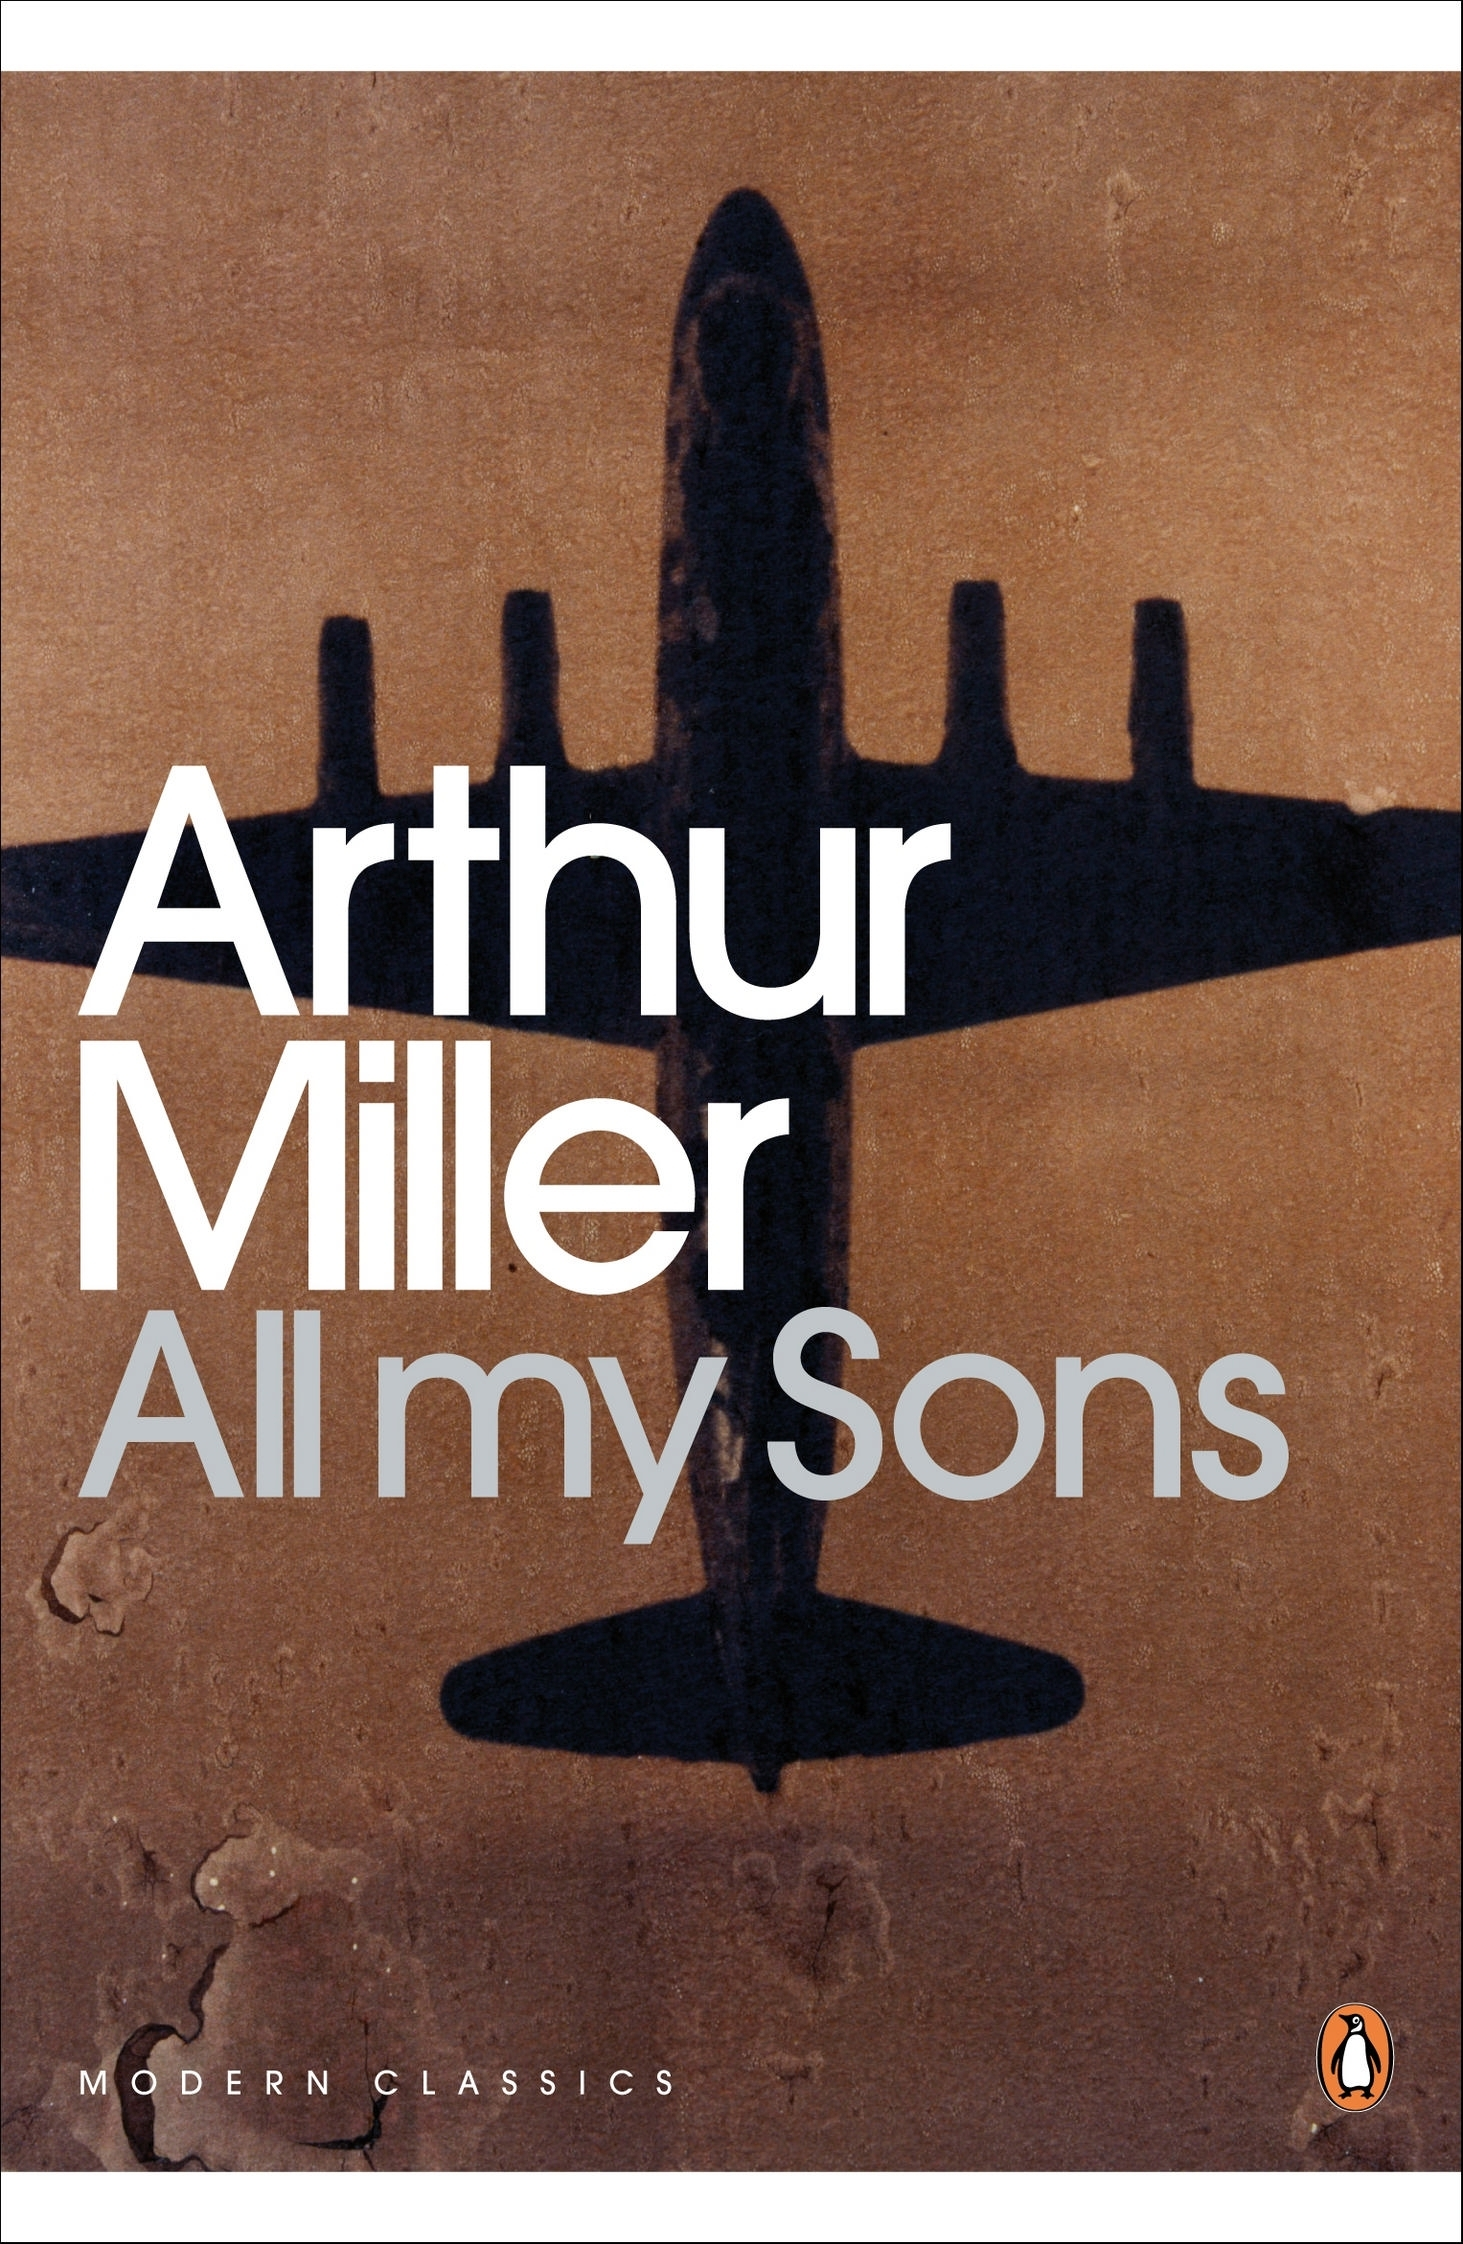 understanding arthur millers all my sons essay Permeate arthur miller's writing in all my sons elements in a work wants a thorough understanding of the life of influential essay, 'all.